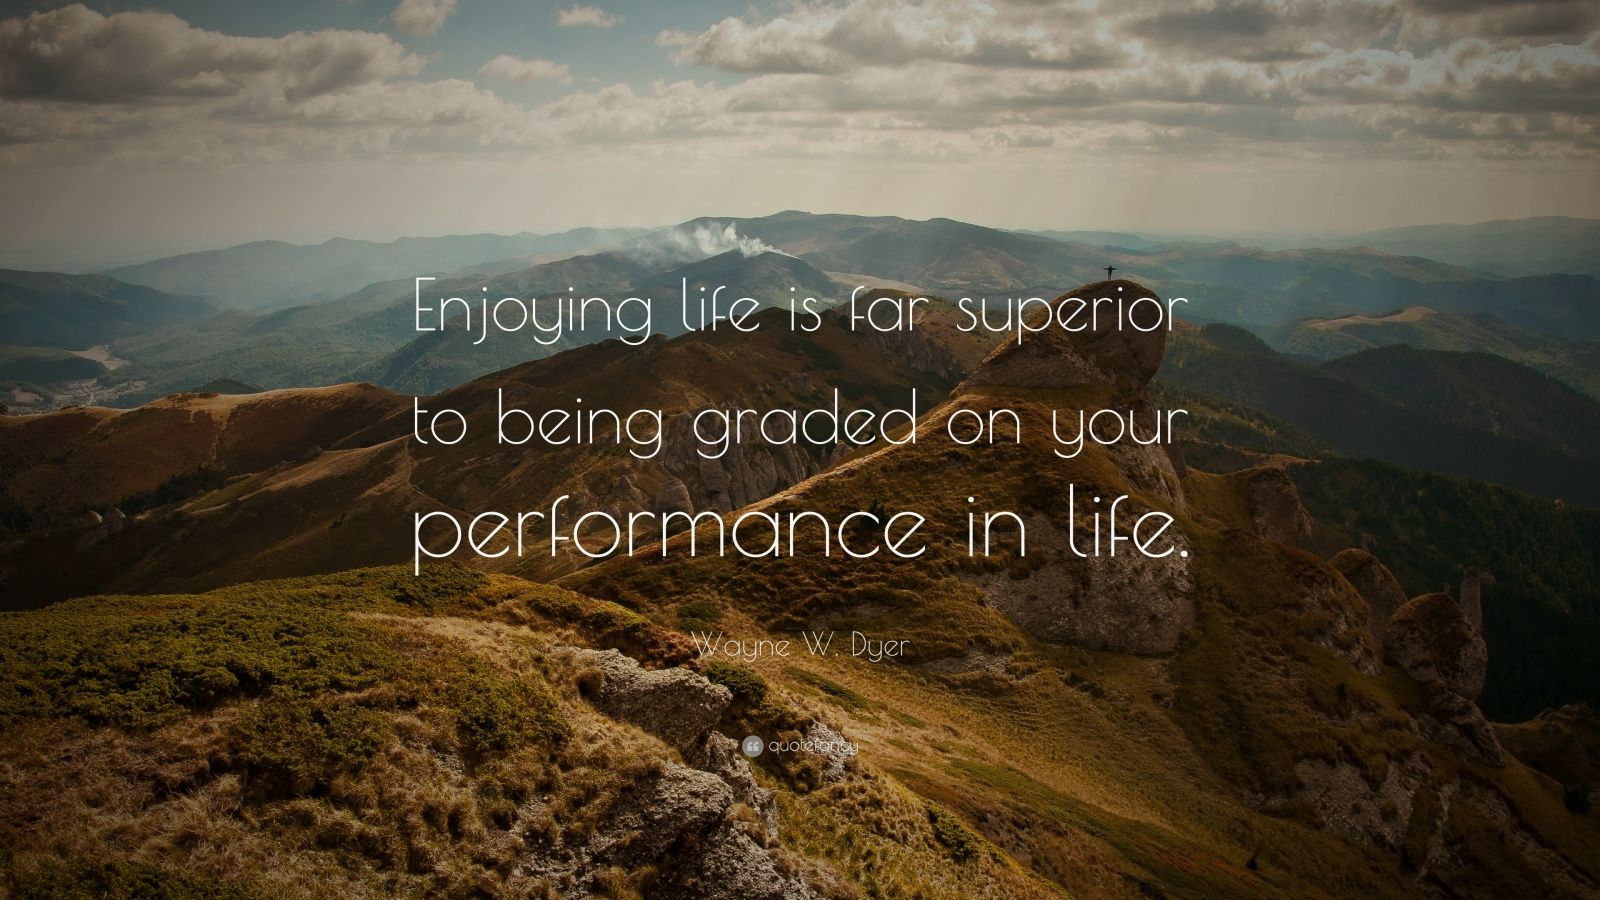 "Wayne W. Dyer Quote: ""Enjoying life is far superior to being graded on your performance in life."""